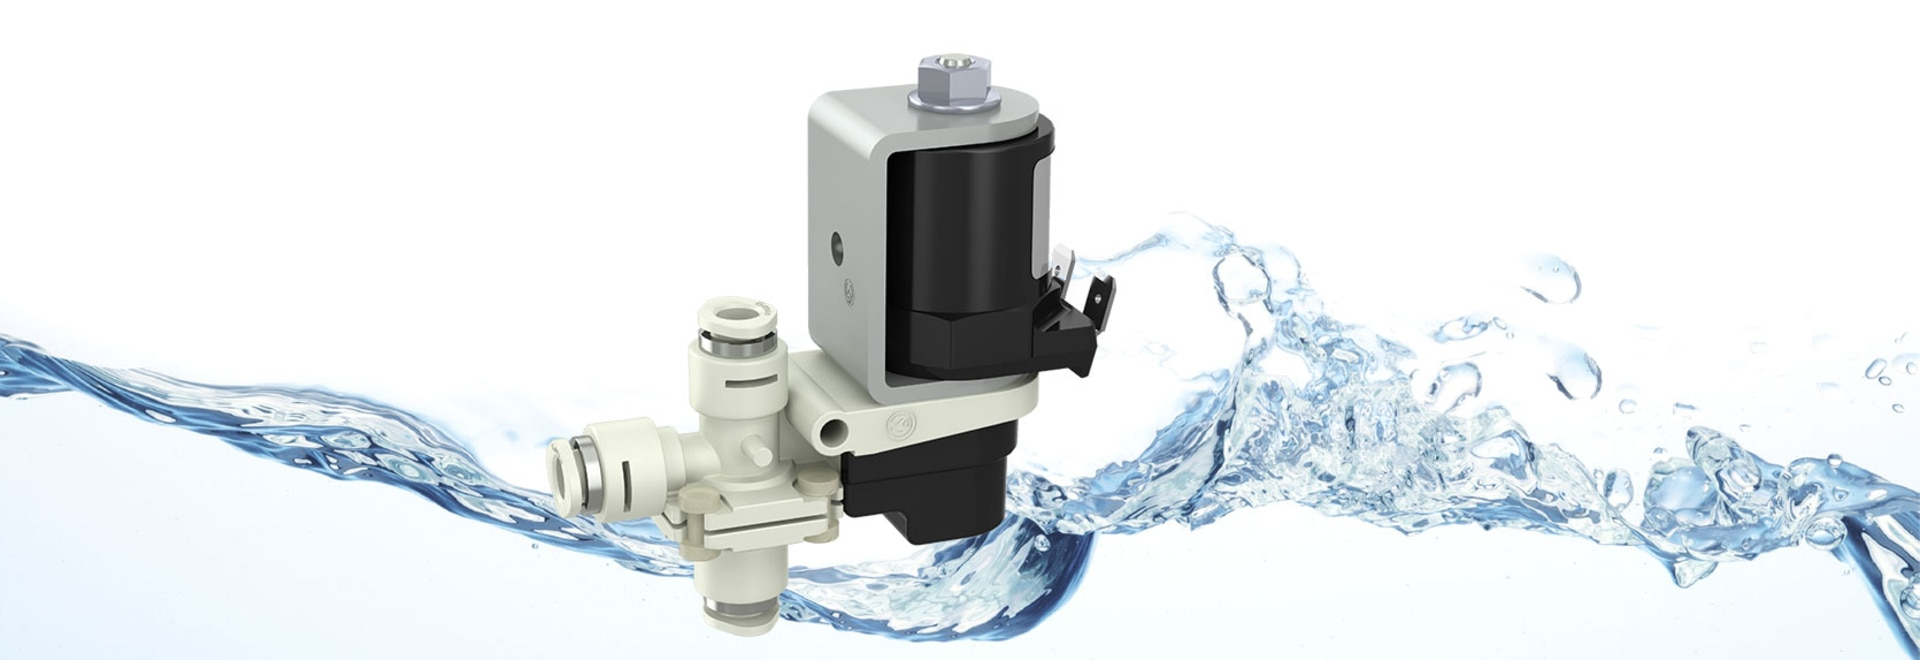 3/2-way lever valves with push-fit connectors for high temperatures